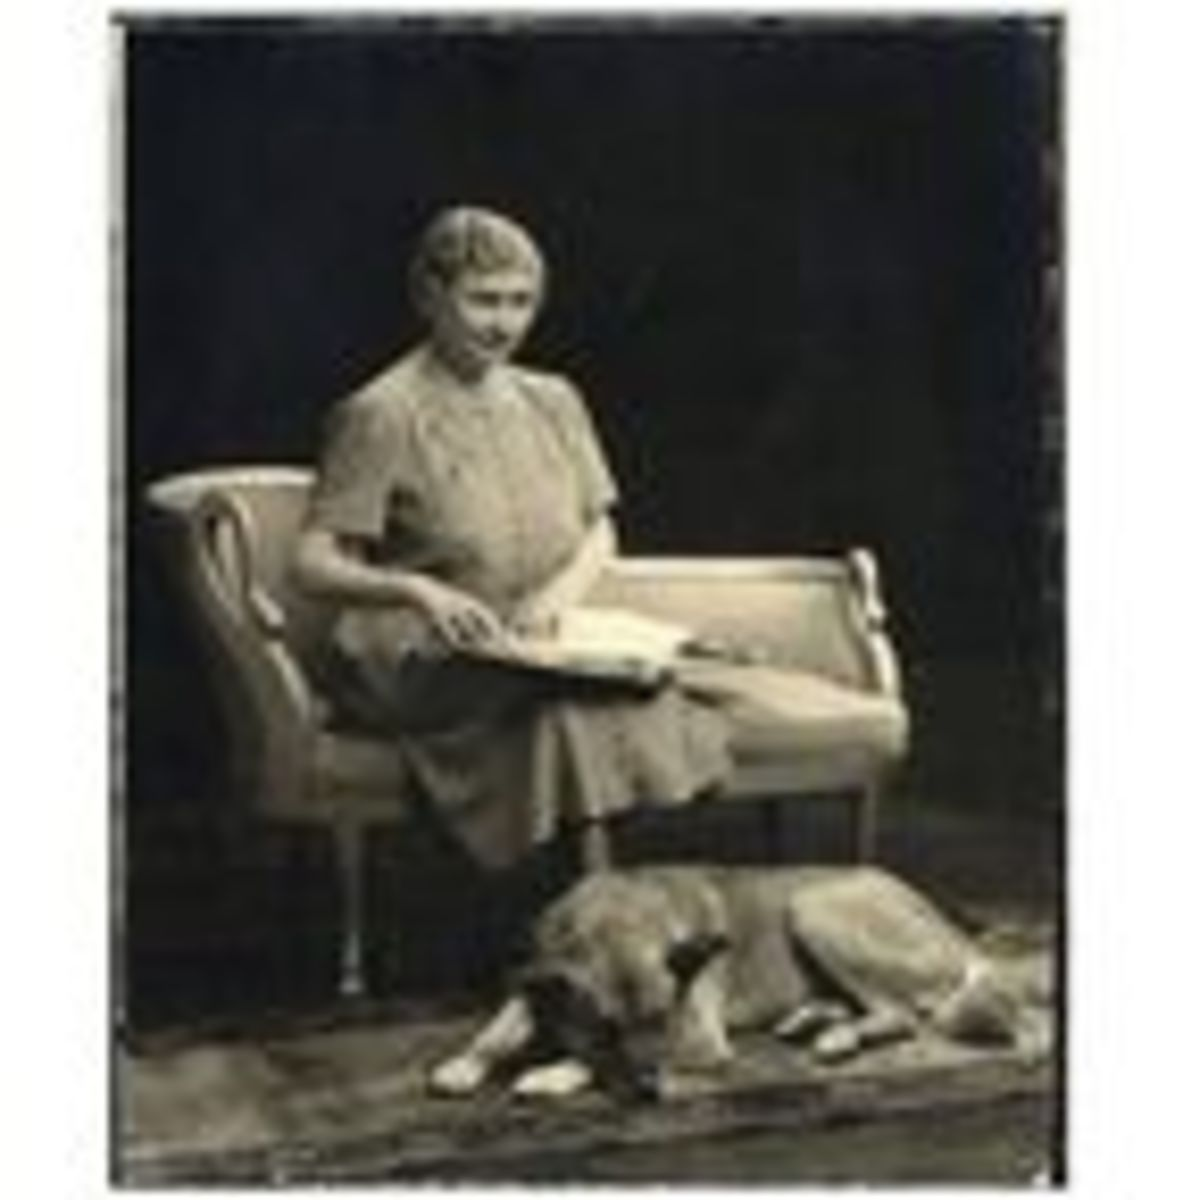 Helen Keller and the First Akitas in the United States